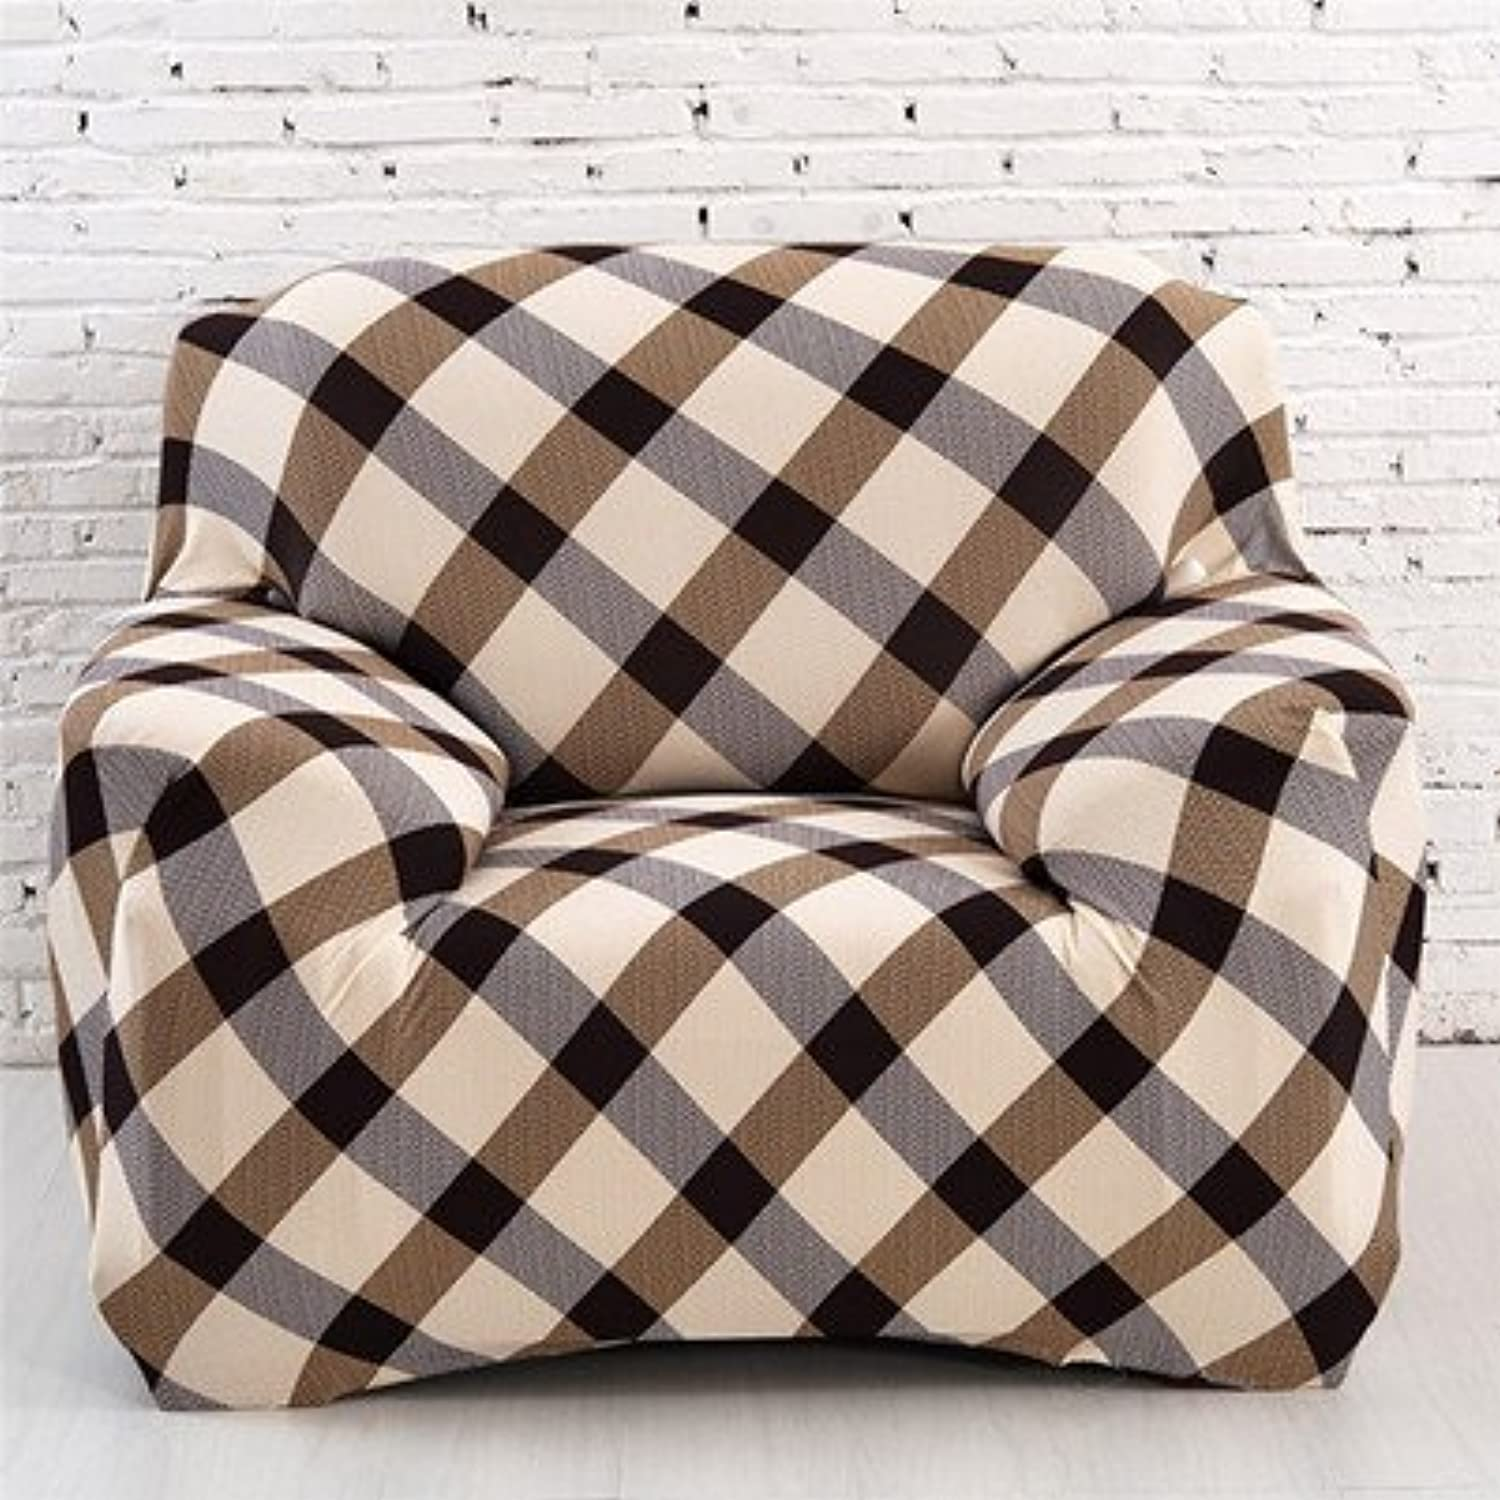 Modern Sofa Cover Printing Sofa Slipcover Stretch Funiture Couch Cover Elastic Sofa Covers for Living Room Corner 1 2 3 4   Pattern 03, 1 Seater